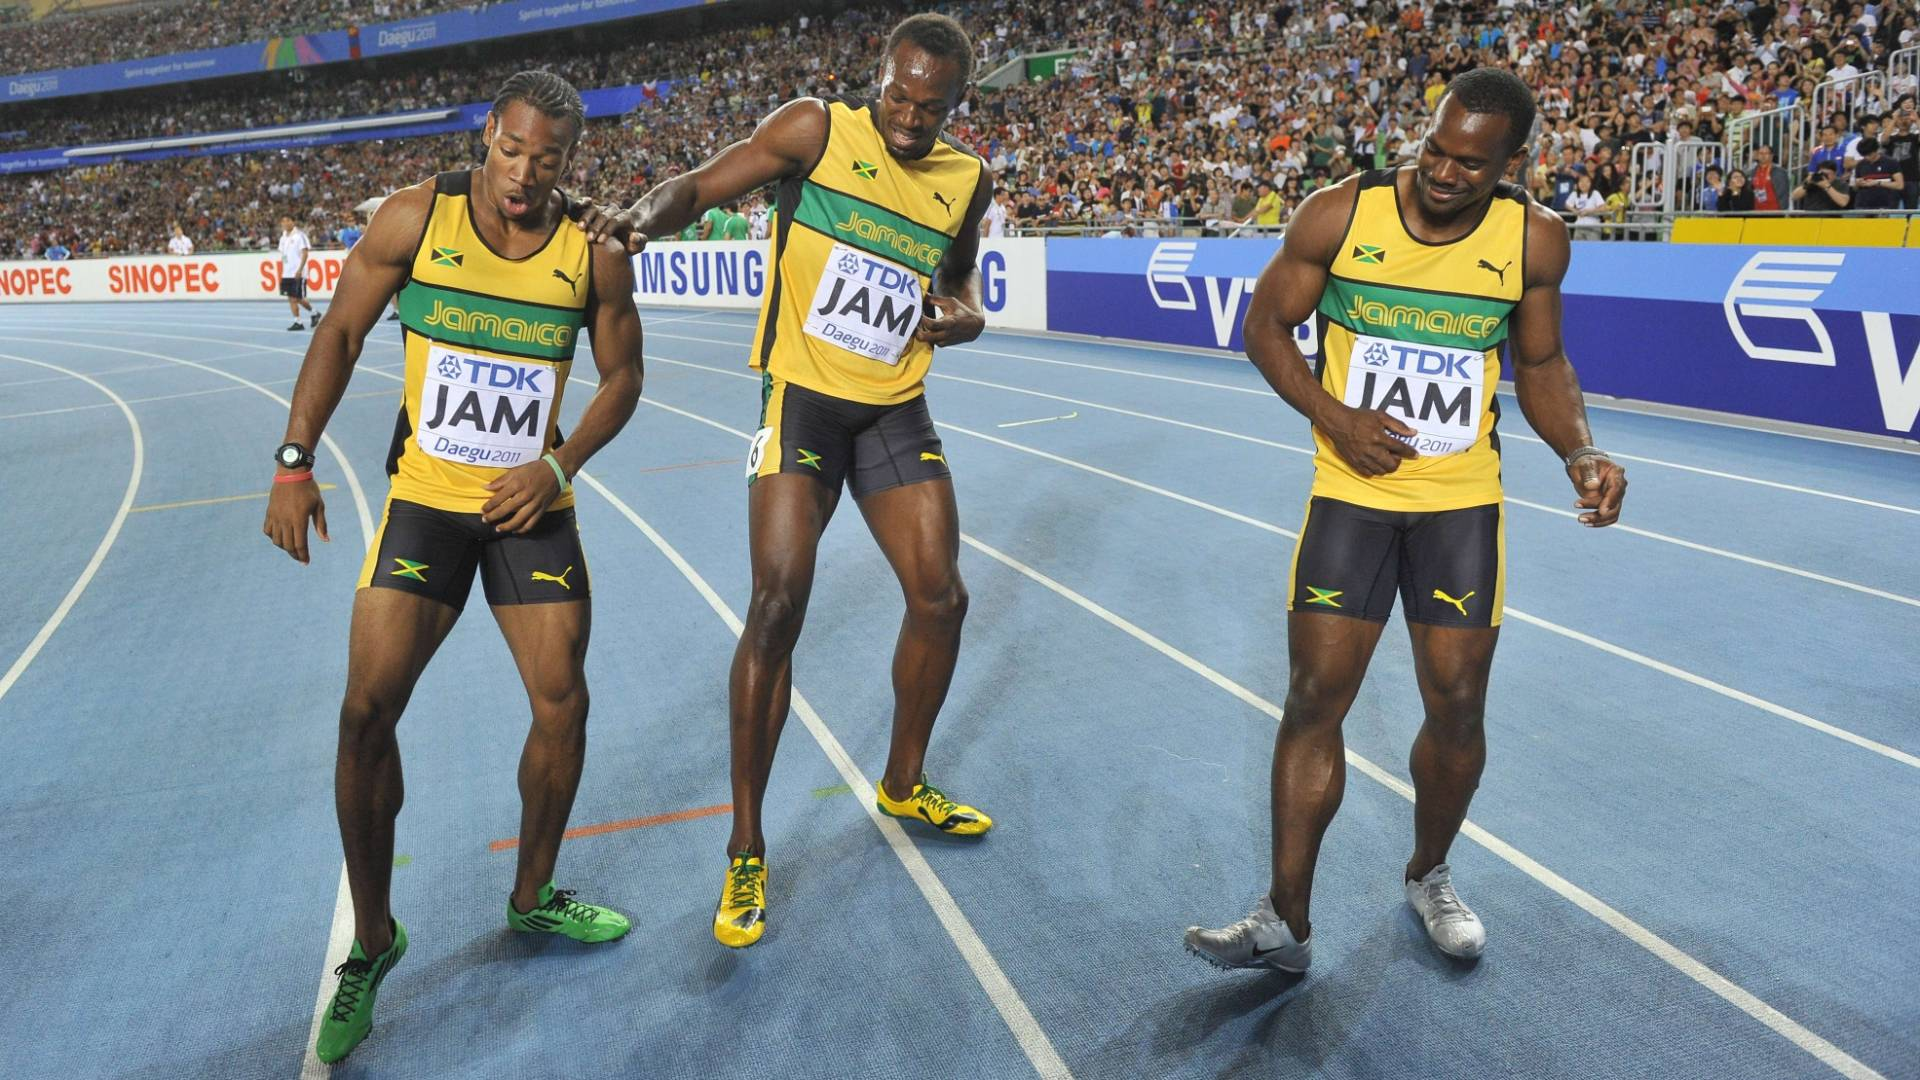 Usain Bolt (centro) faz dana com Yohan Blake e Nesta Carter para comemorar a conquista do Mundial com recorde no revezamento 4x100 m (04/09/2011)